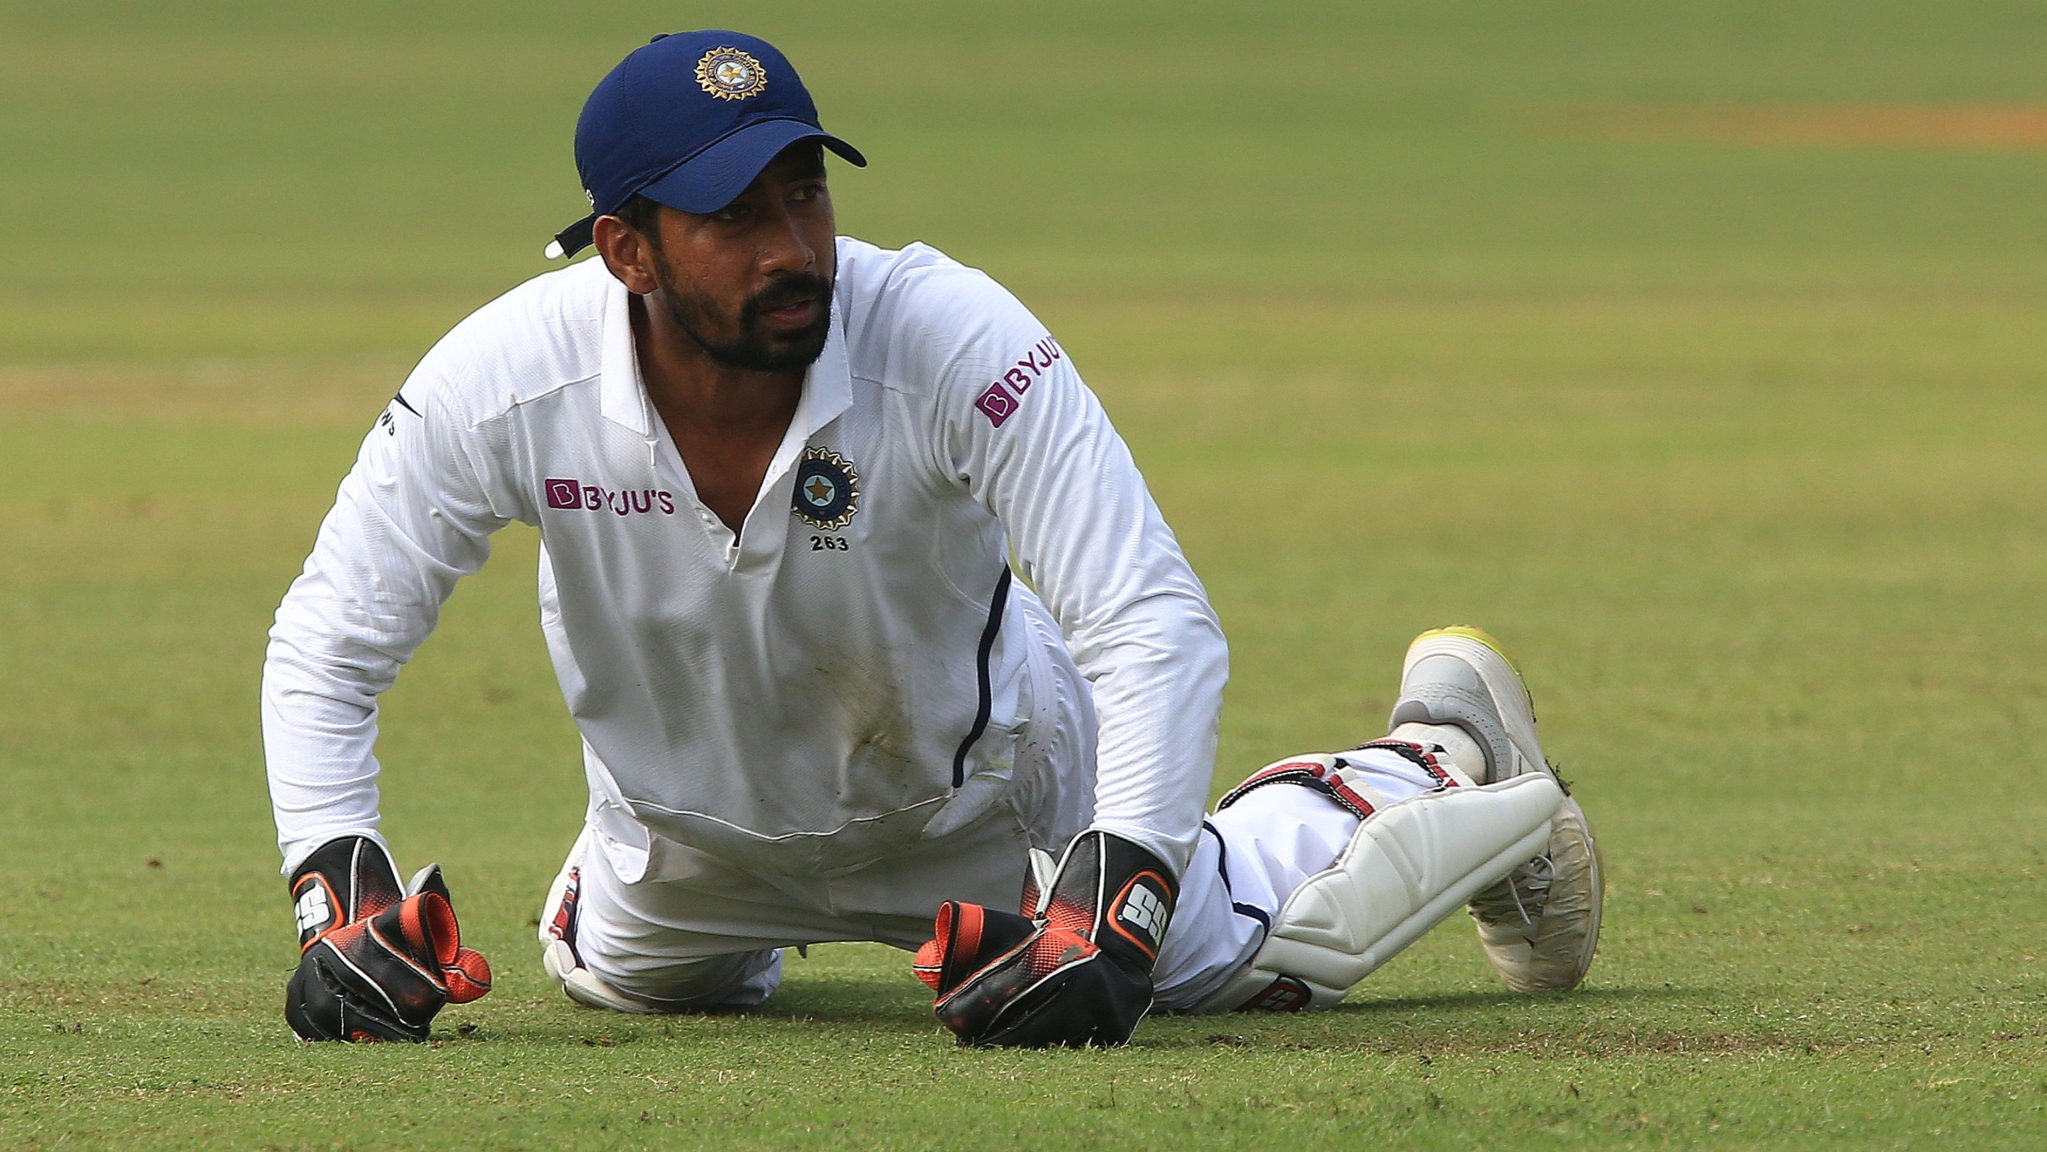 Fans Hail 'Superman' Saha's Wicketkeeping Skills in Pune Test